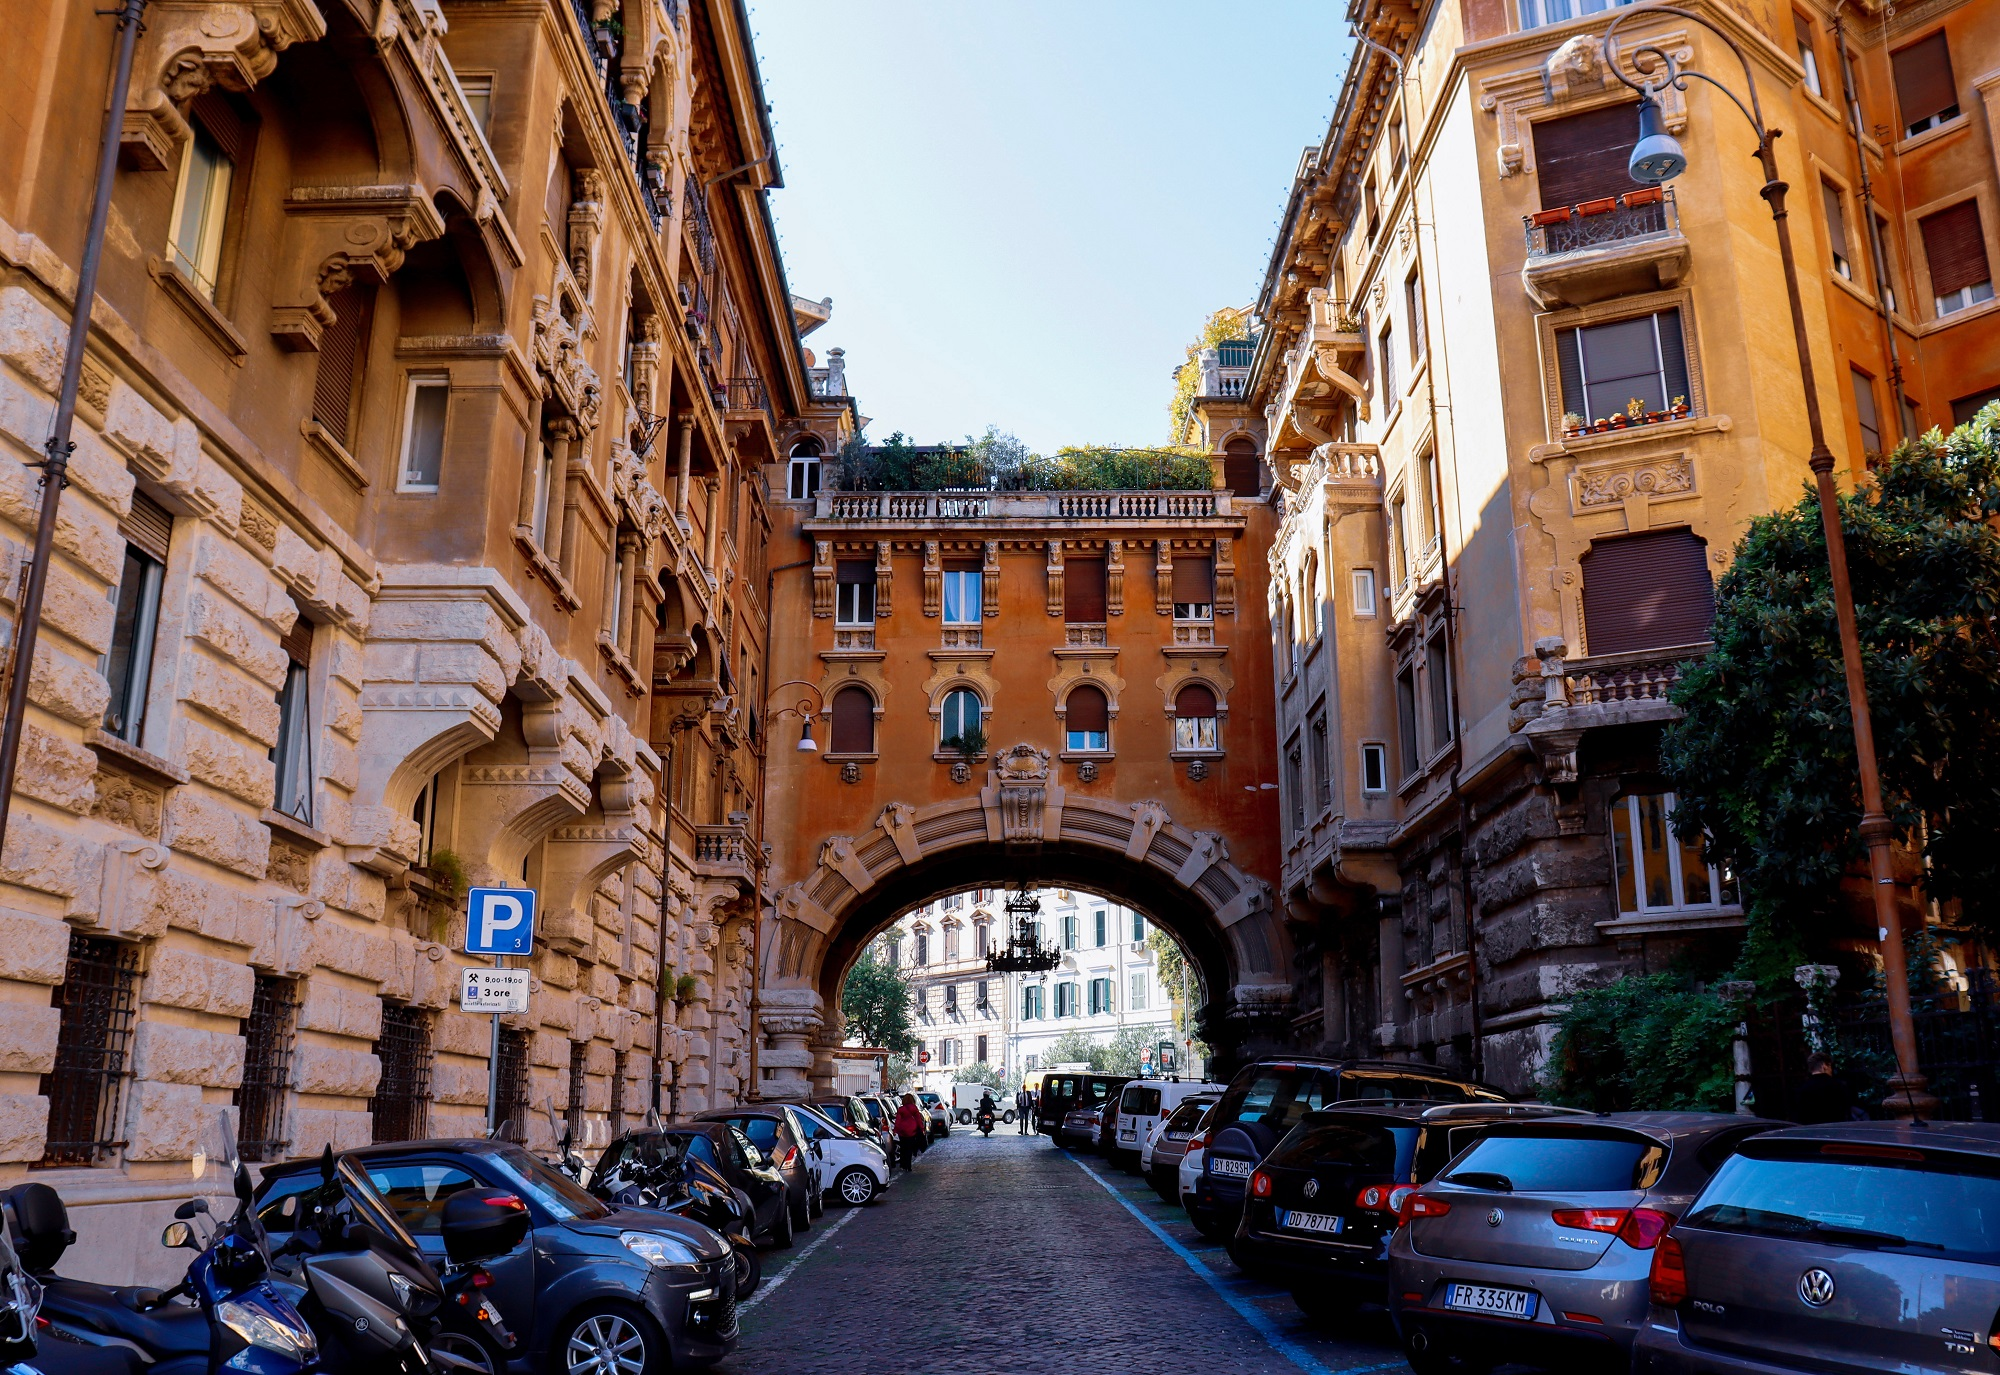 What to see in Trastevere?